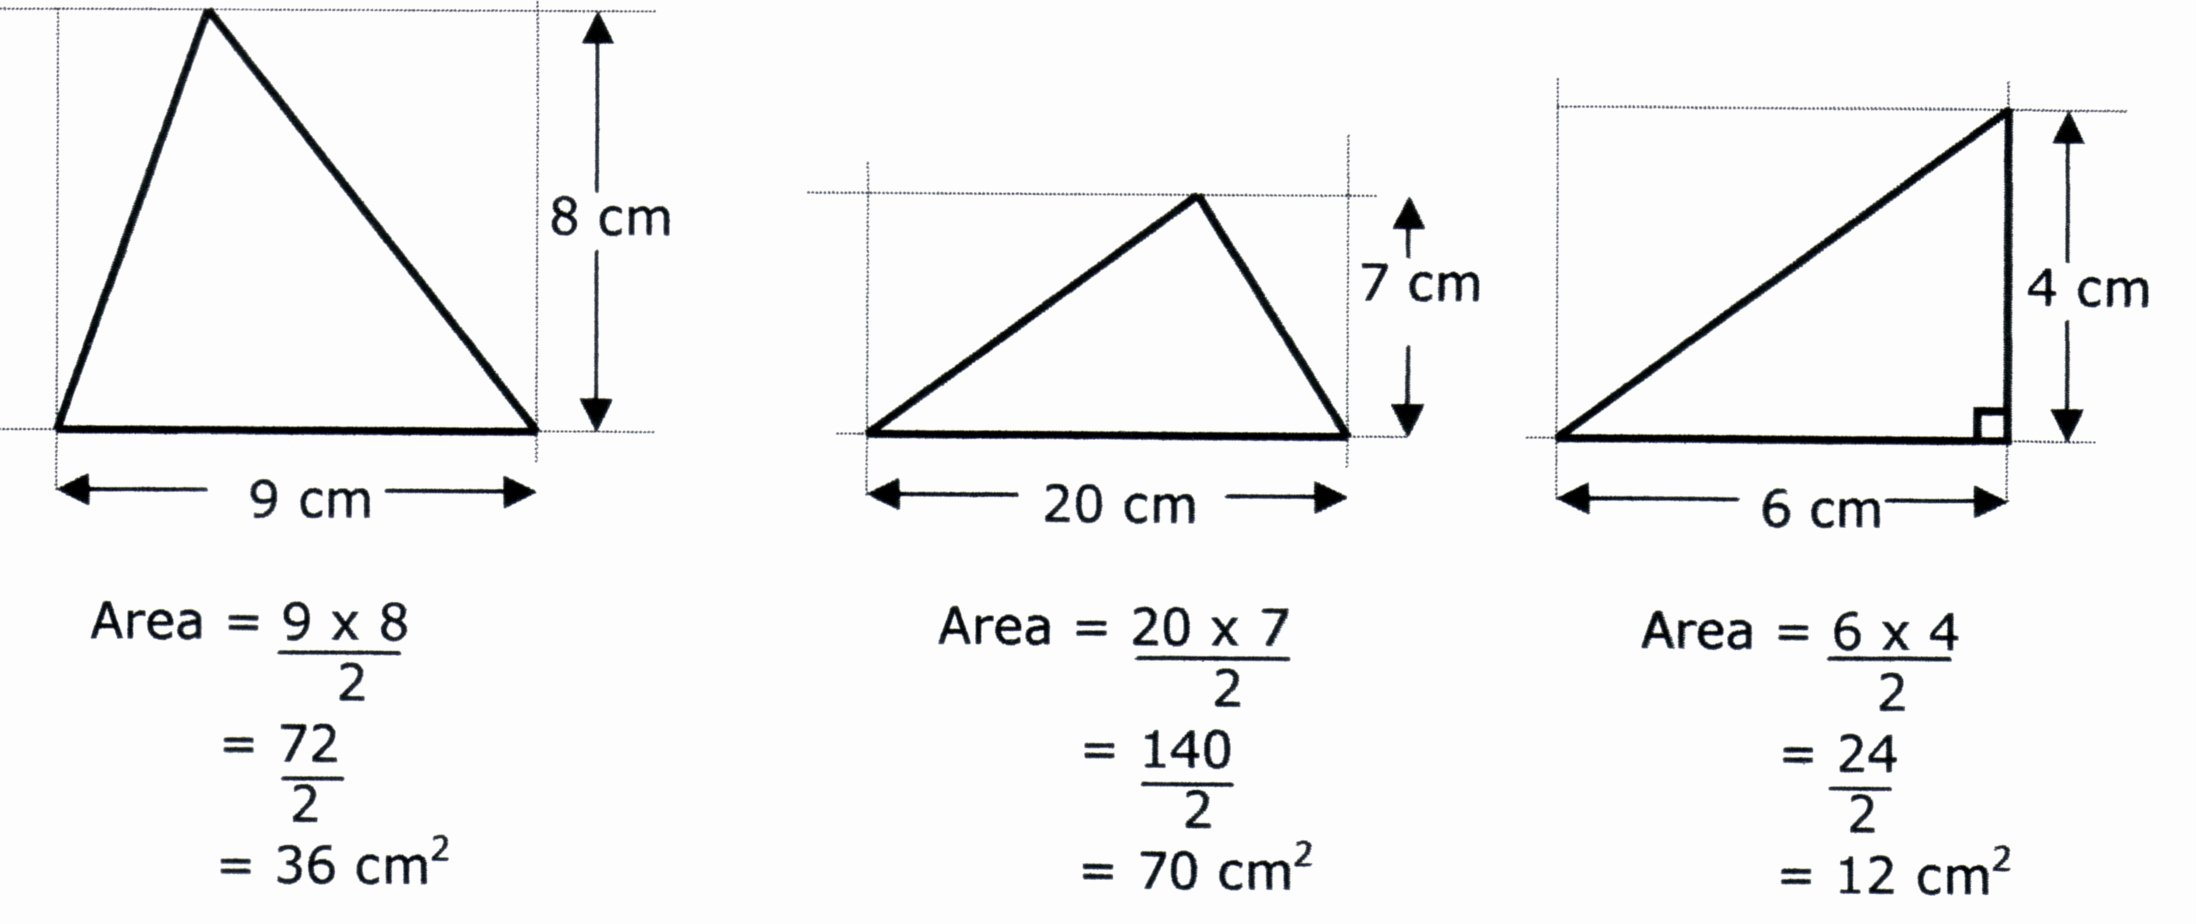 Area Of A Triangle Worksheet Best Of Mr Foote Maths area Of Triangles 7a3